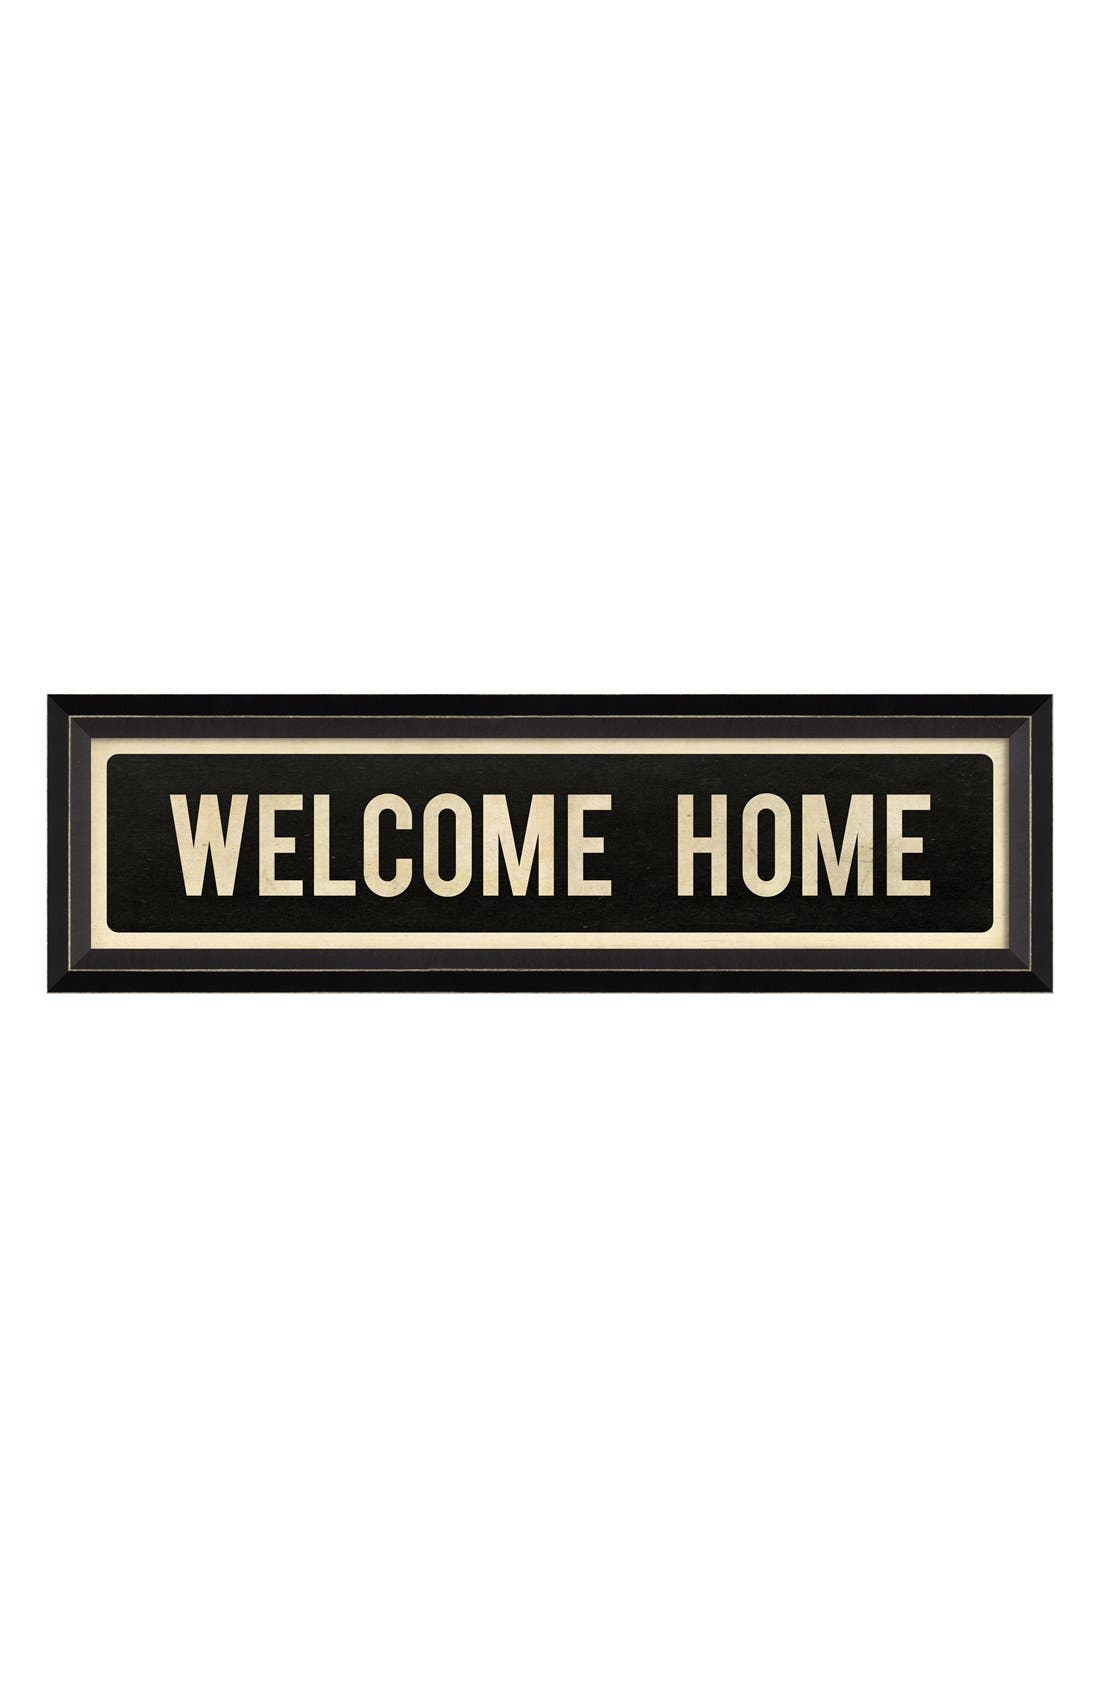 Main Image - Spicher and Company 'Welcome Home' Vintage Look Sign Artwork